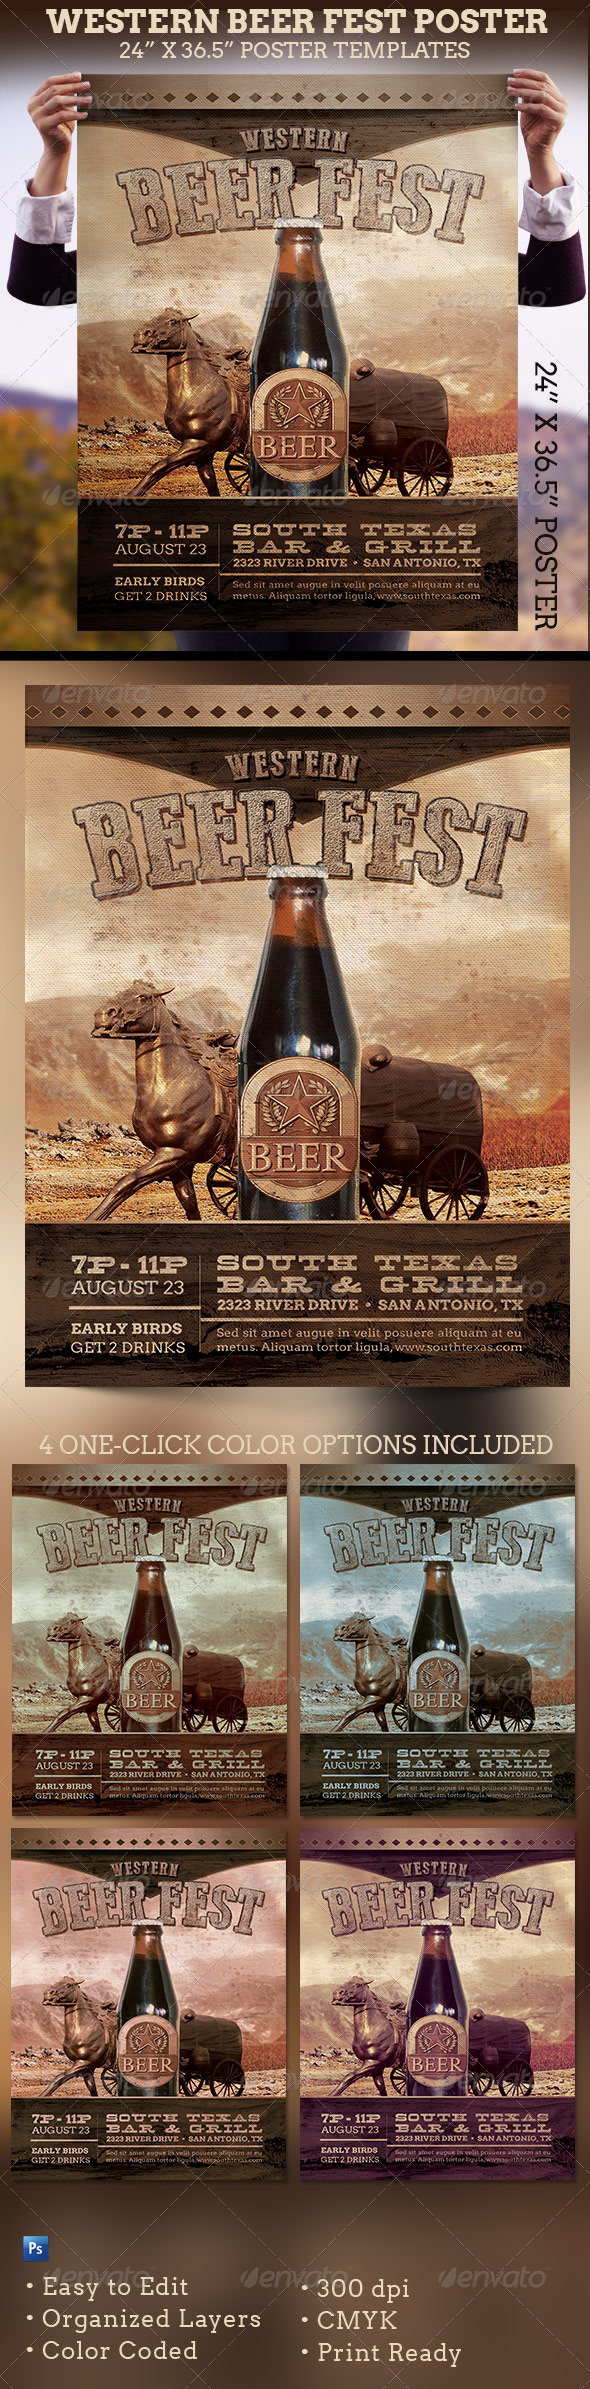 Western Beer Fest Poster Template - Signage Print Templates